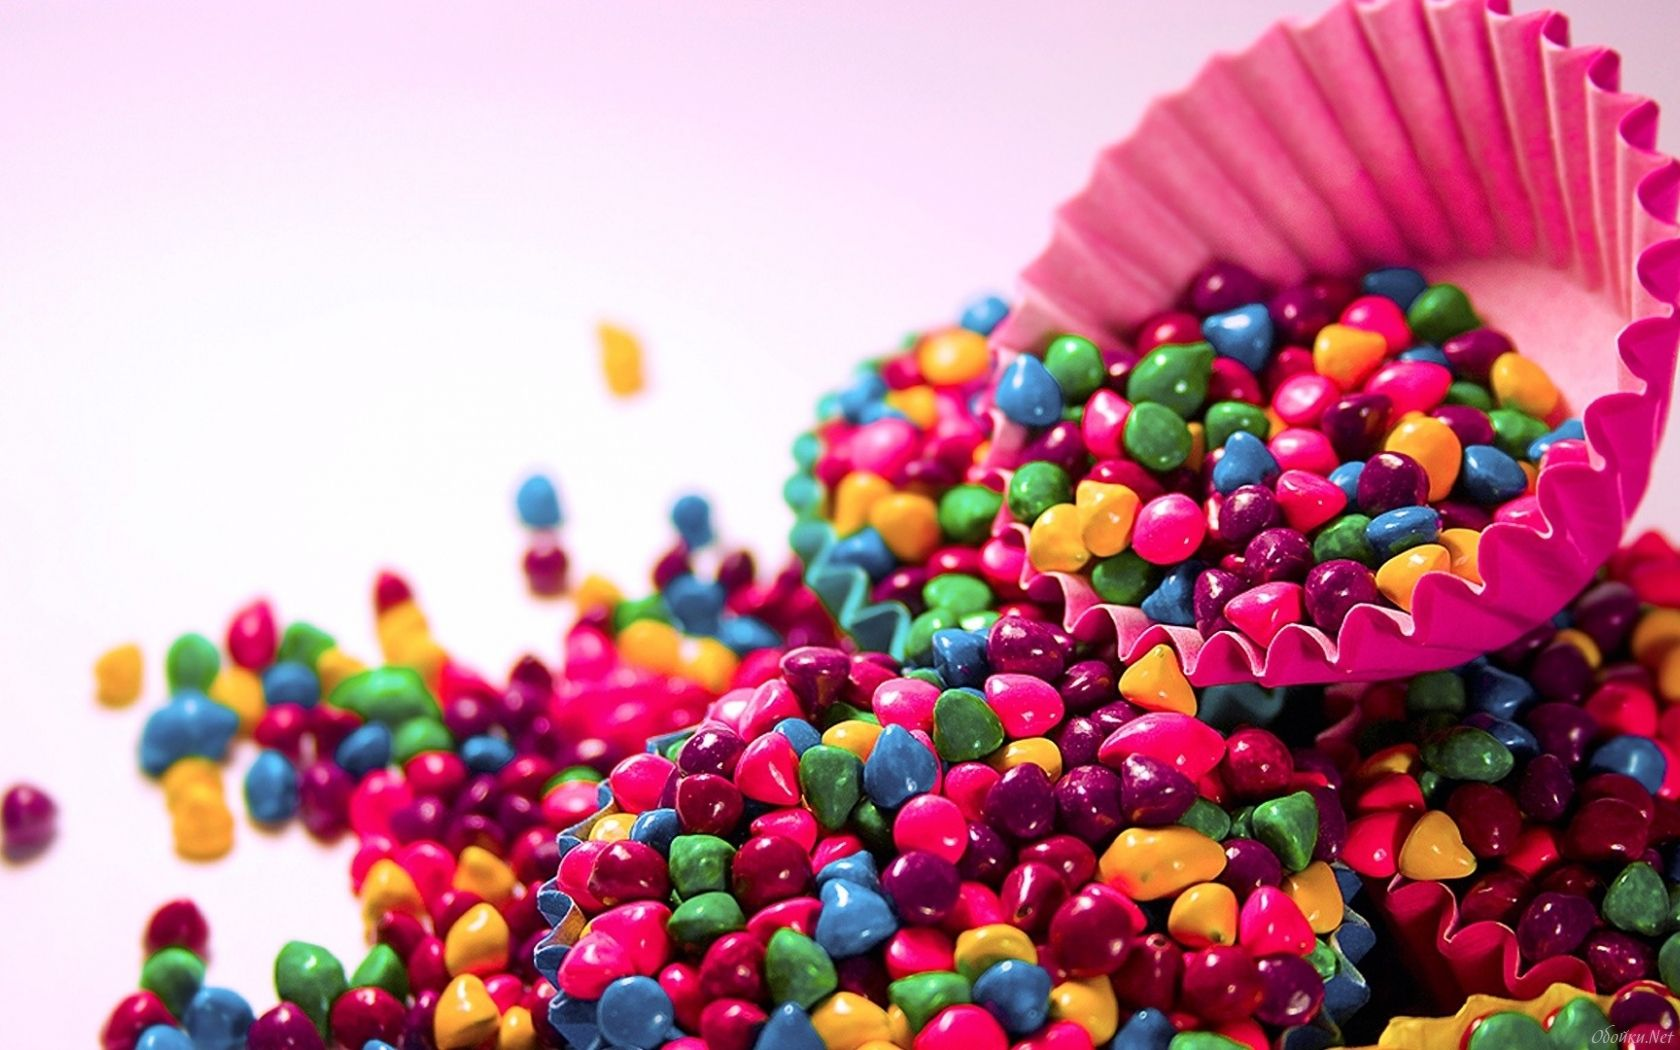 Pin By Stephanie Felix On Candy Is Dandy Colorful Candy Colorful Pictures Rainbow Candy